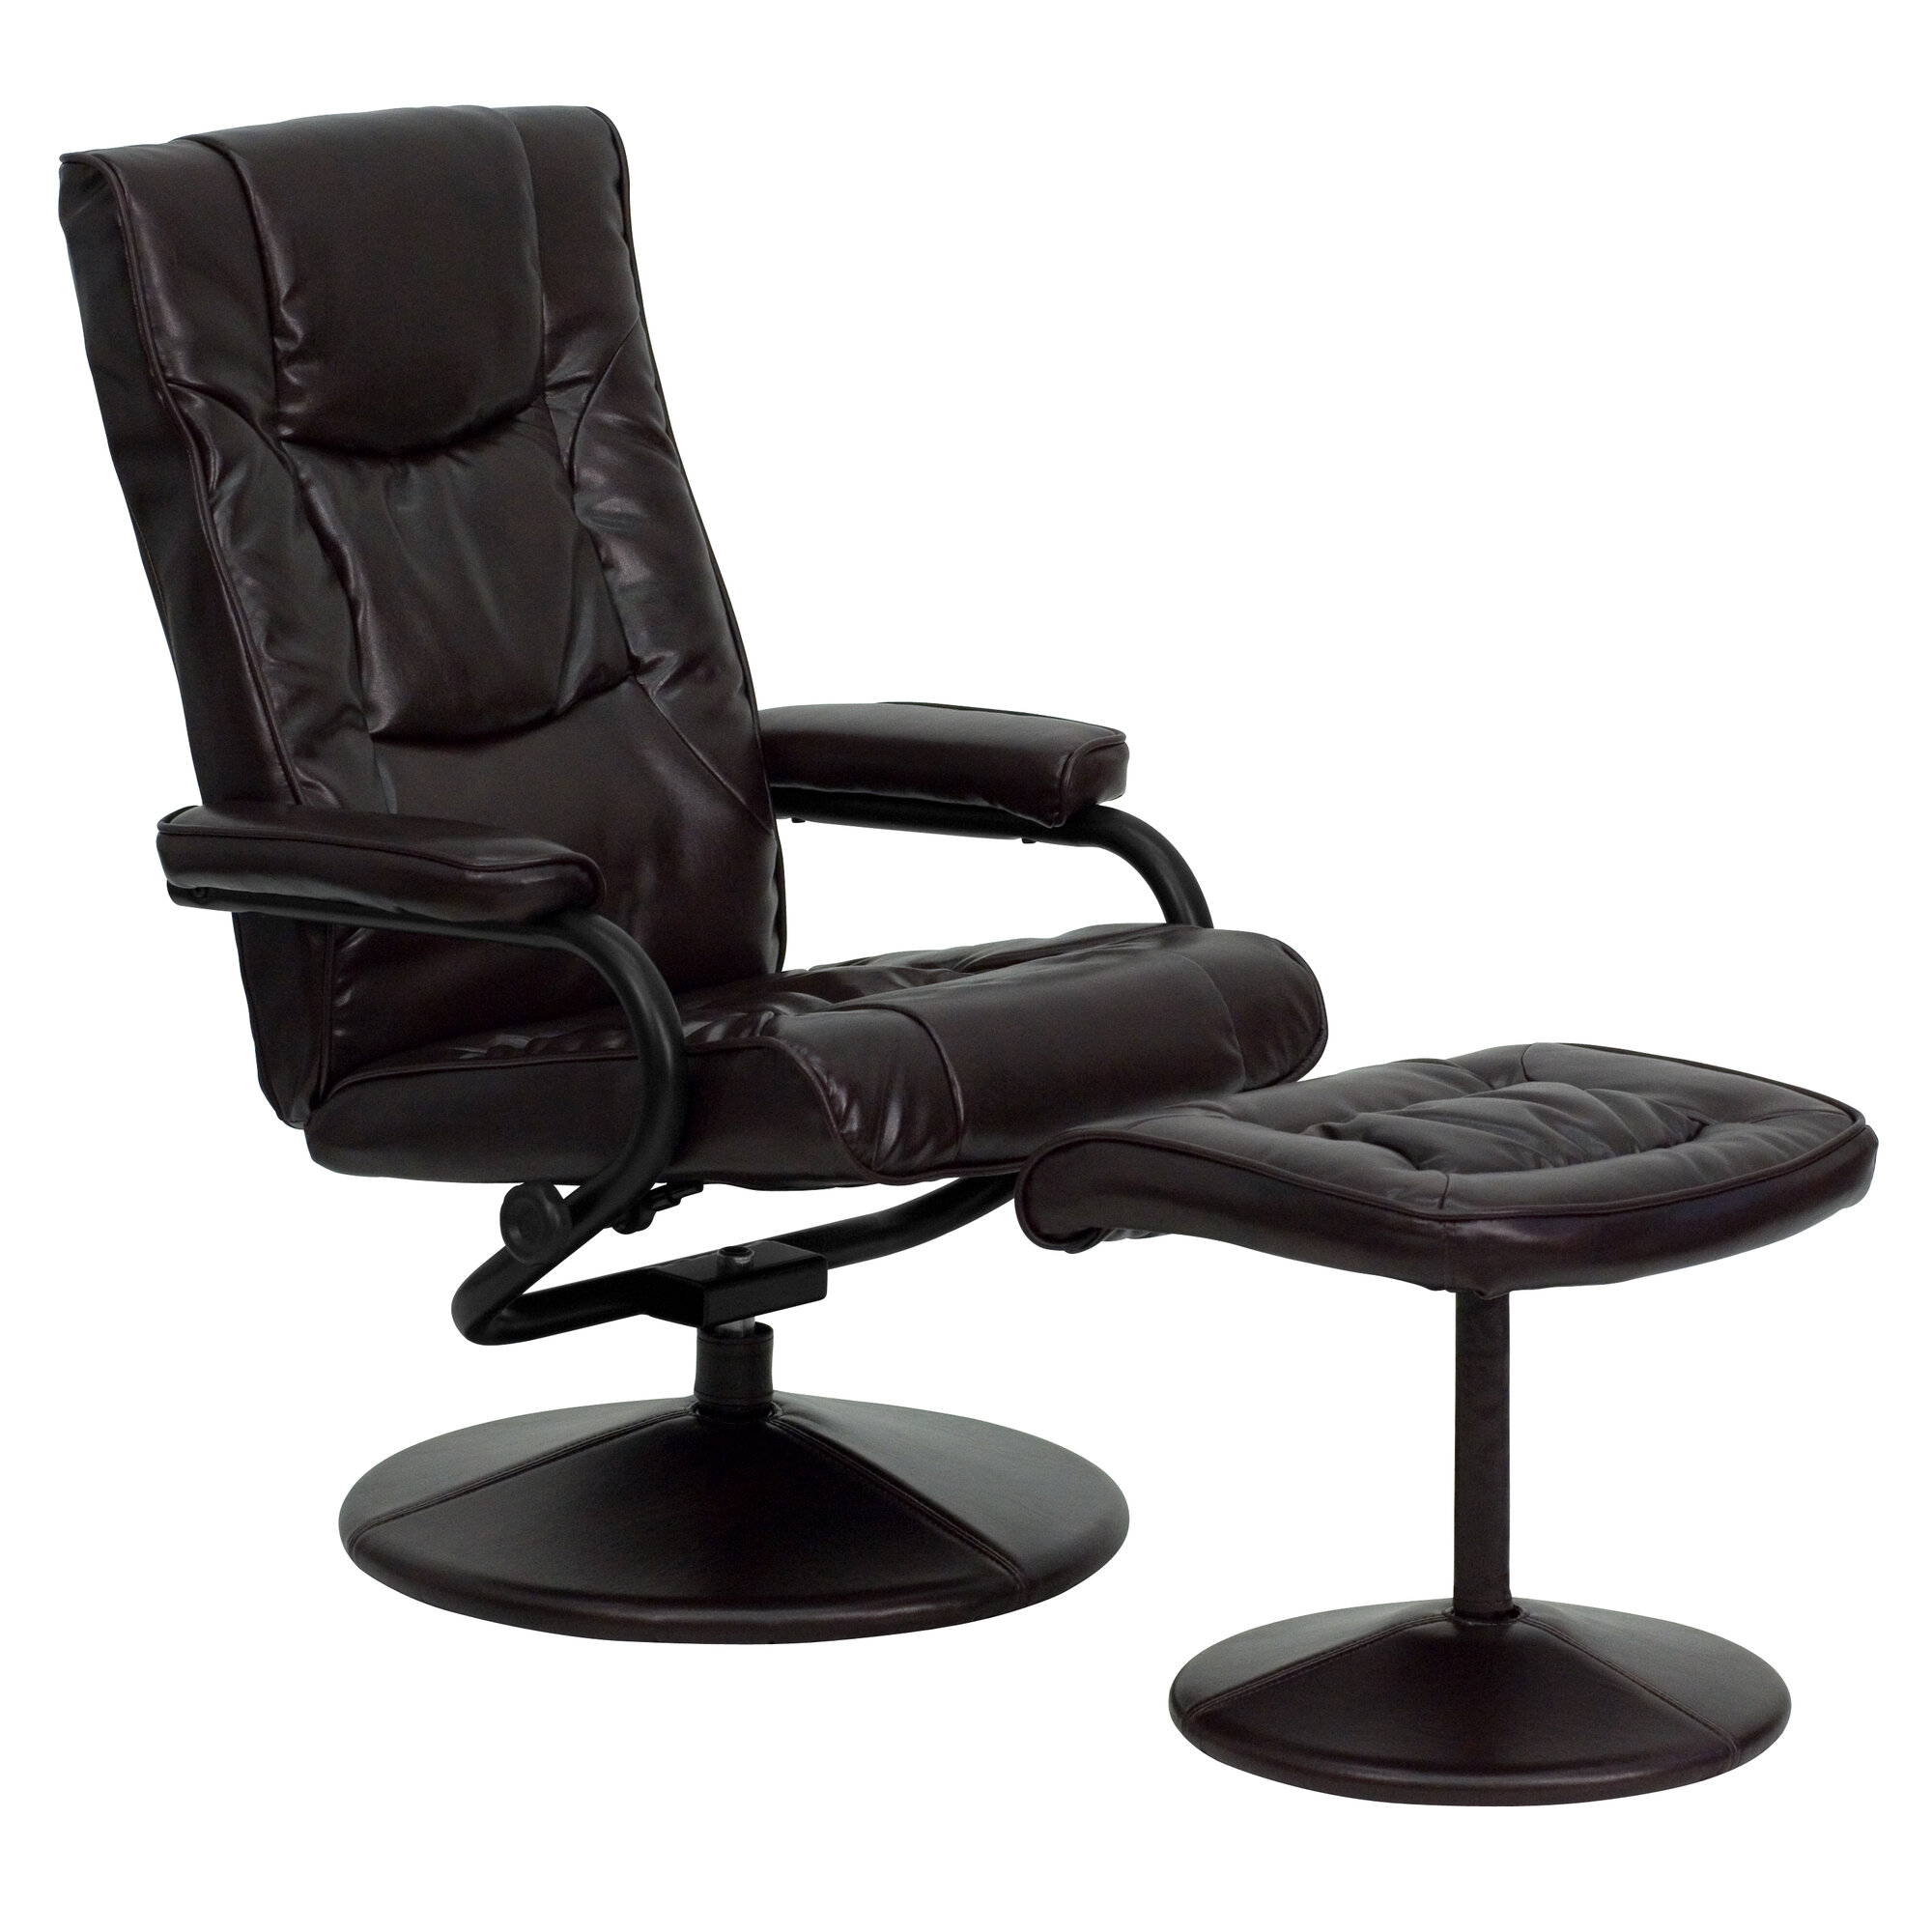 flash furniture contemporary soft leather reclining office chair and ottoman ebay. Black Bedroom Furniture Sets. Home Design Ideas